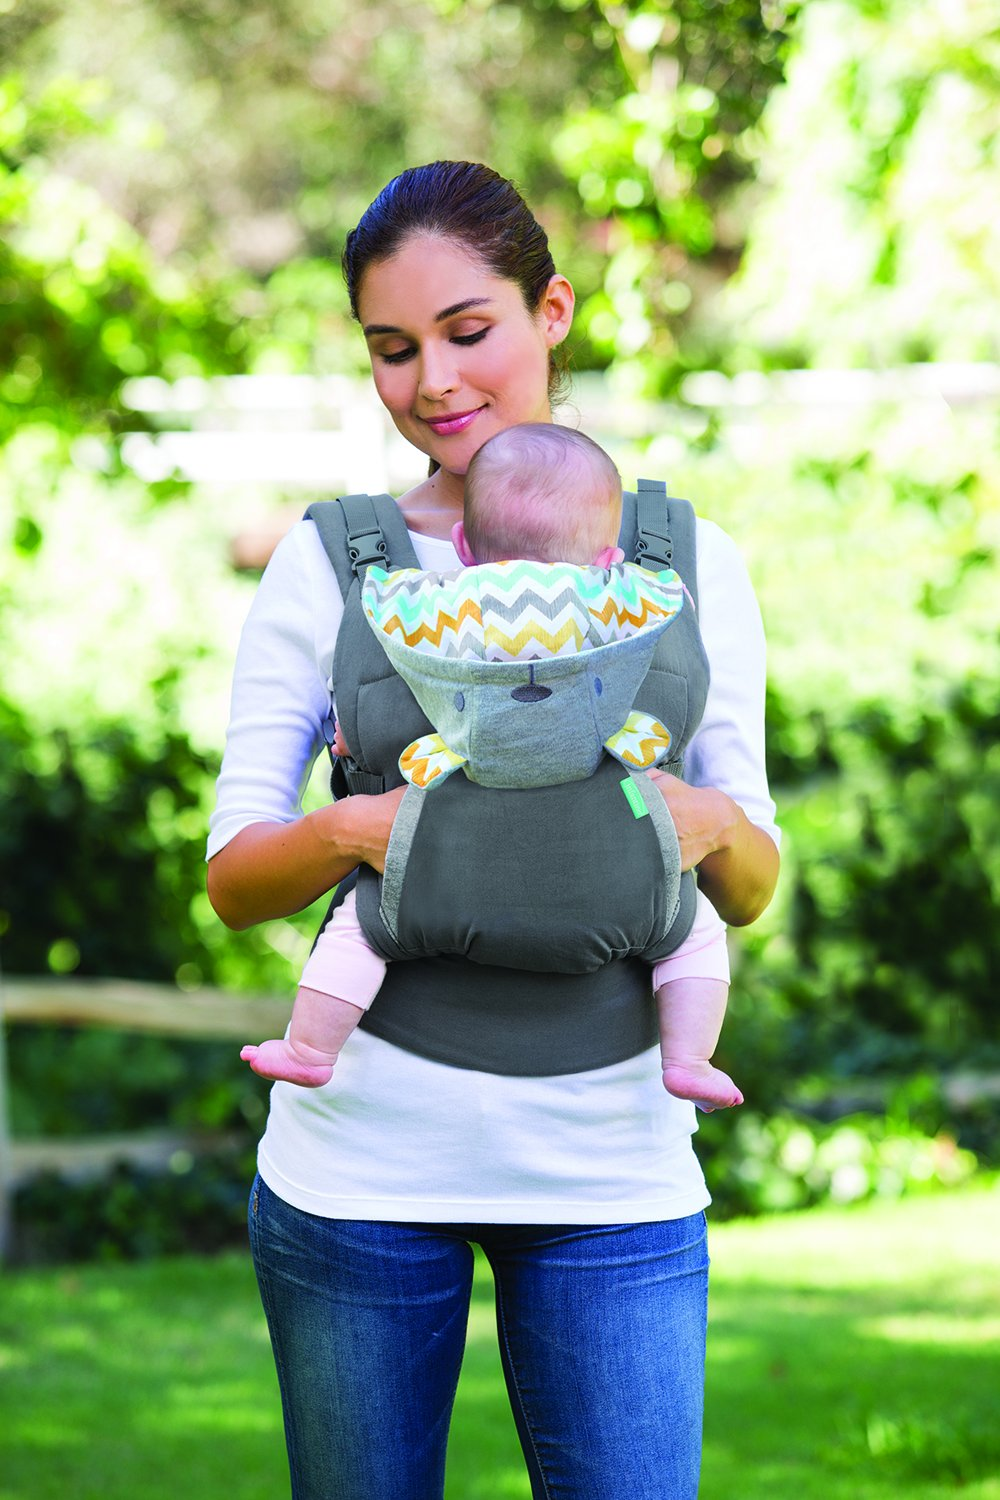 Infantino Cuddle Up Ergonomic Hoodie Carrier, Grey Infantino Fully safety tested Carries children from 12-40lbs (5.4 - 18.1 kgs) 11